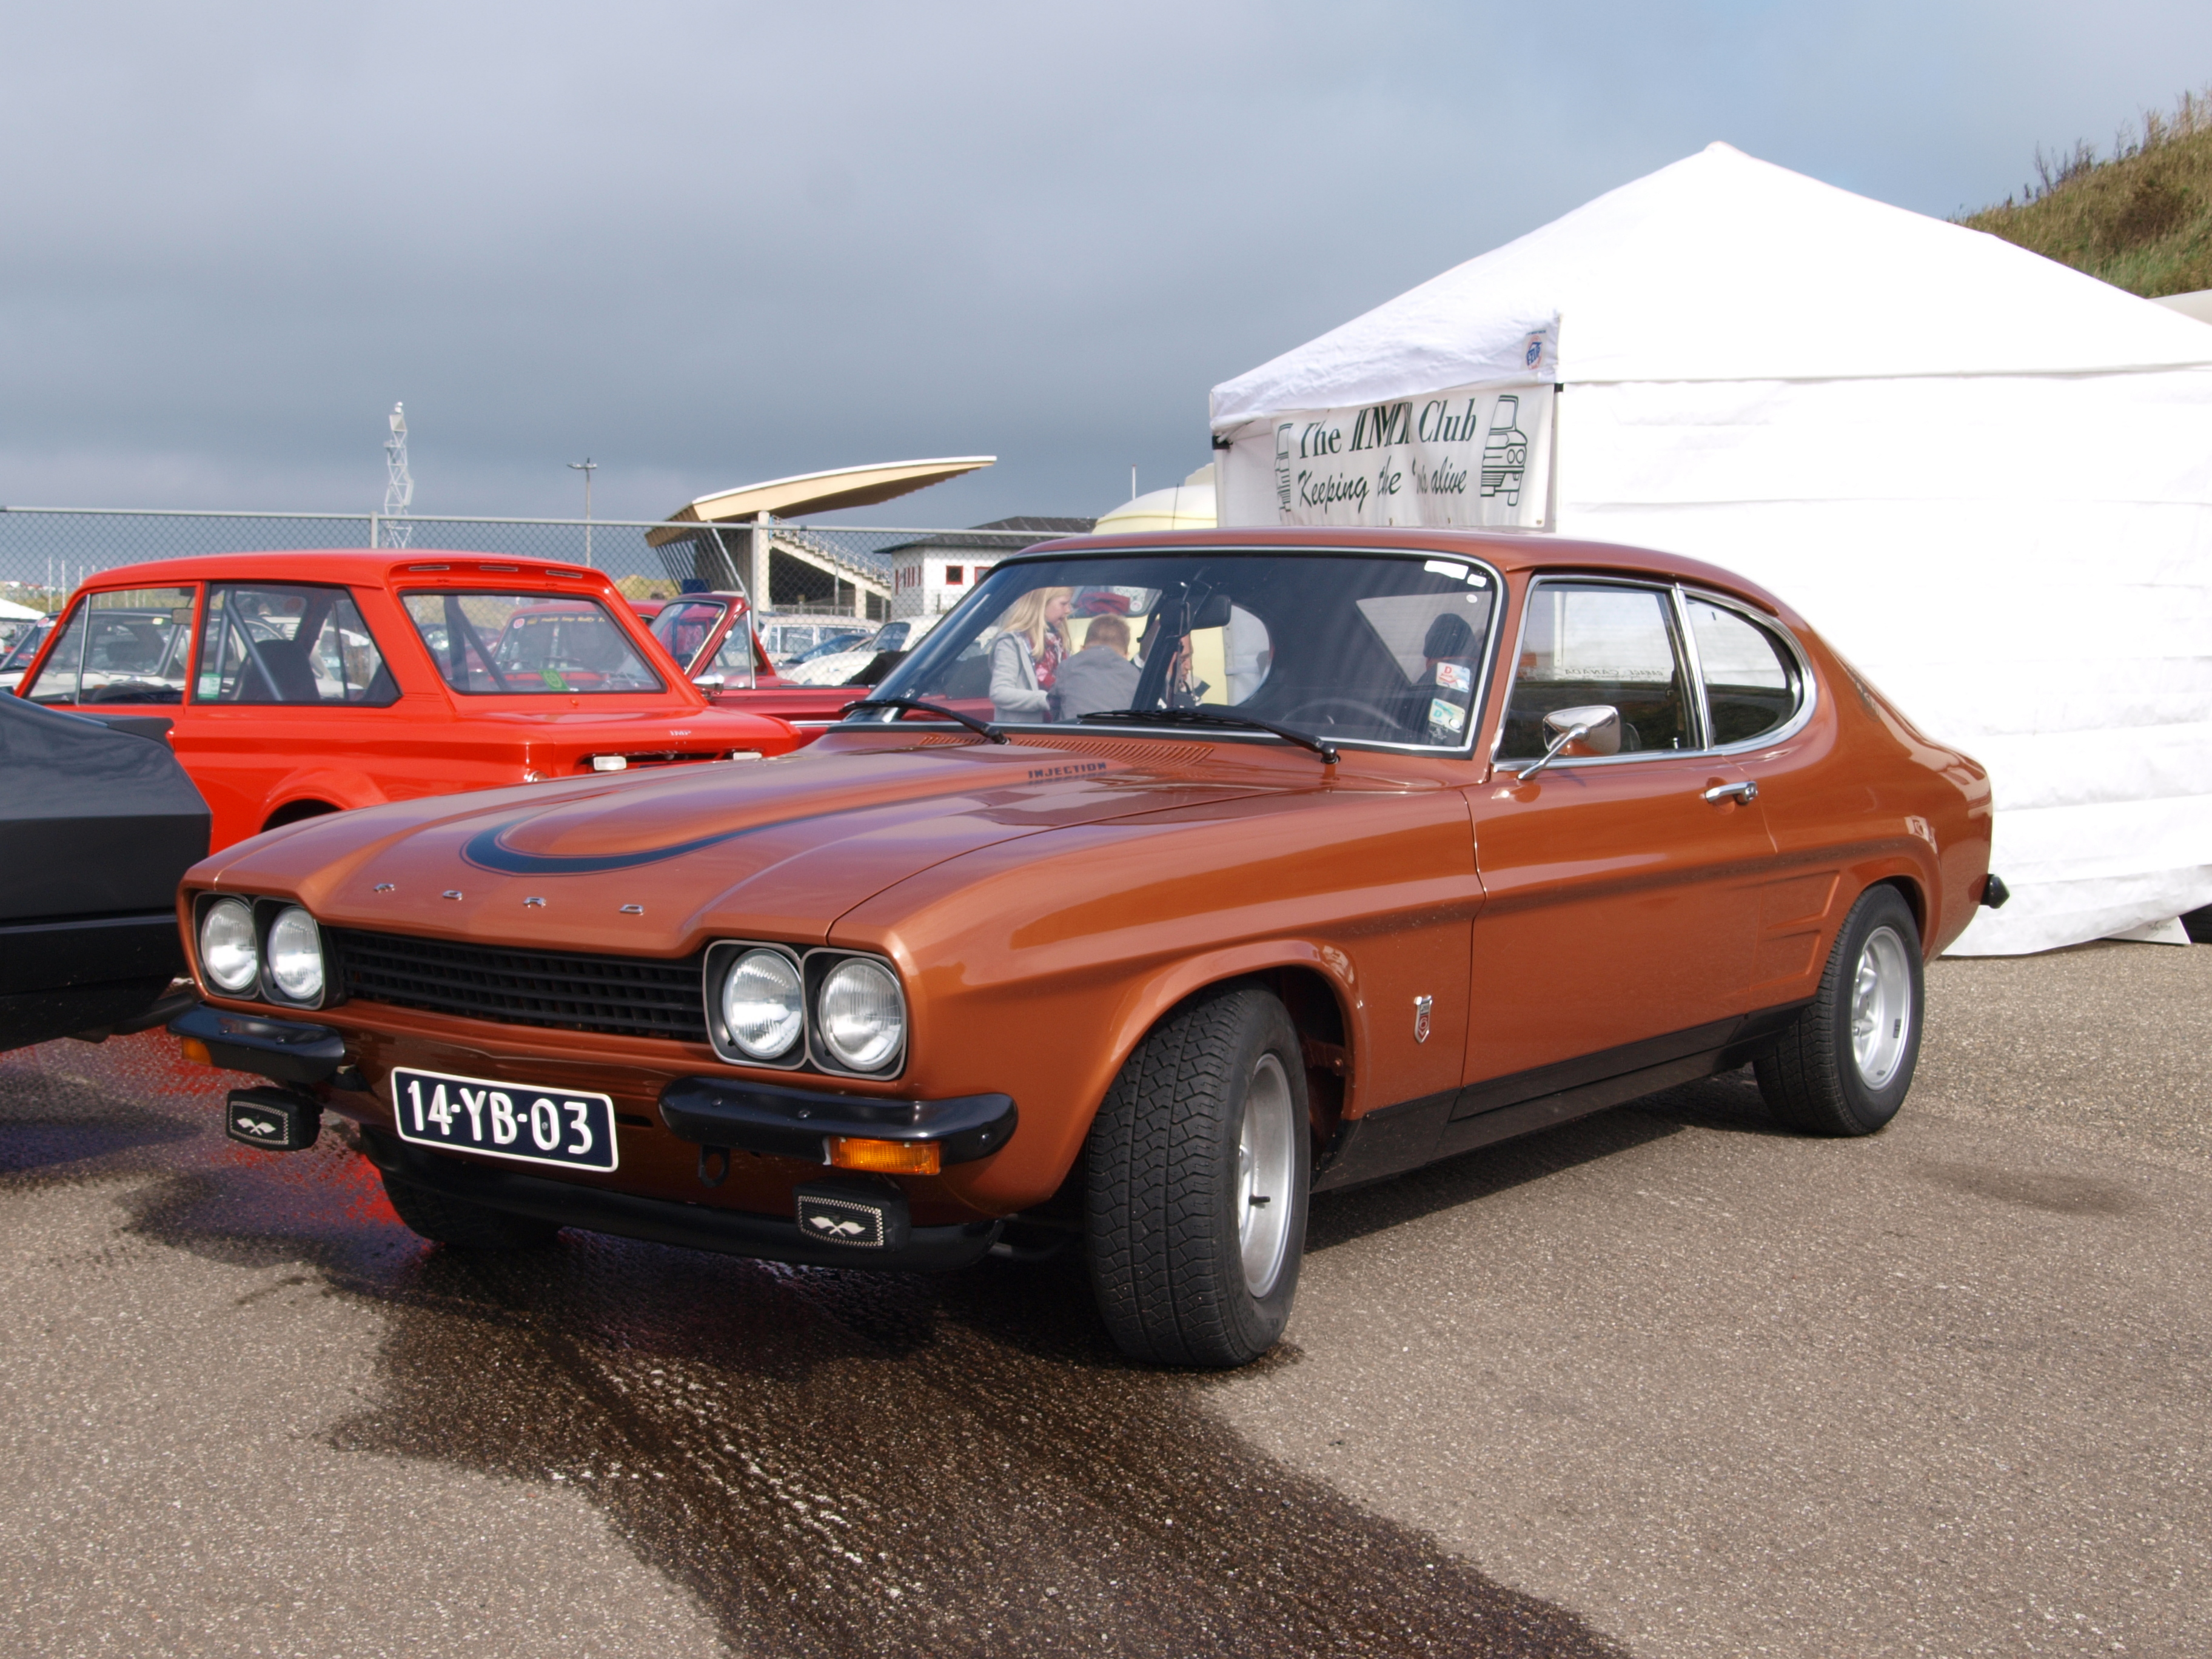 file nationale oldtimerdag zandvoort 2010 1973 ford capri. Black Bedroom Furniture Sets. Home Design Ideas